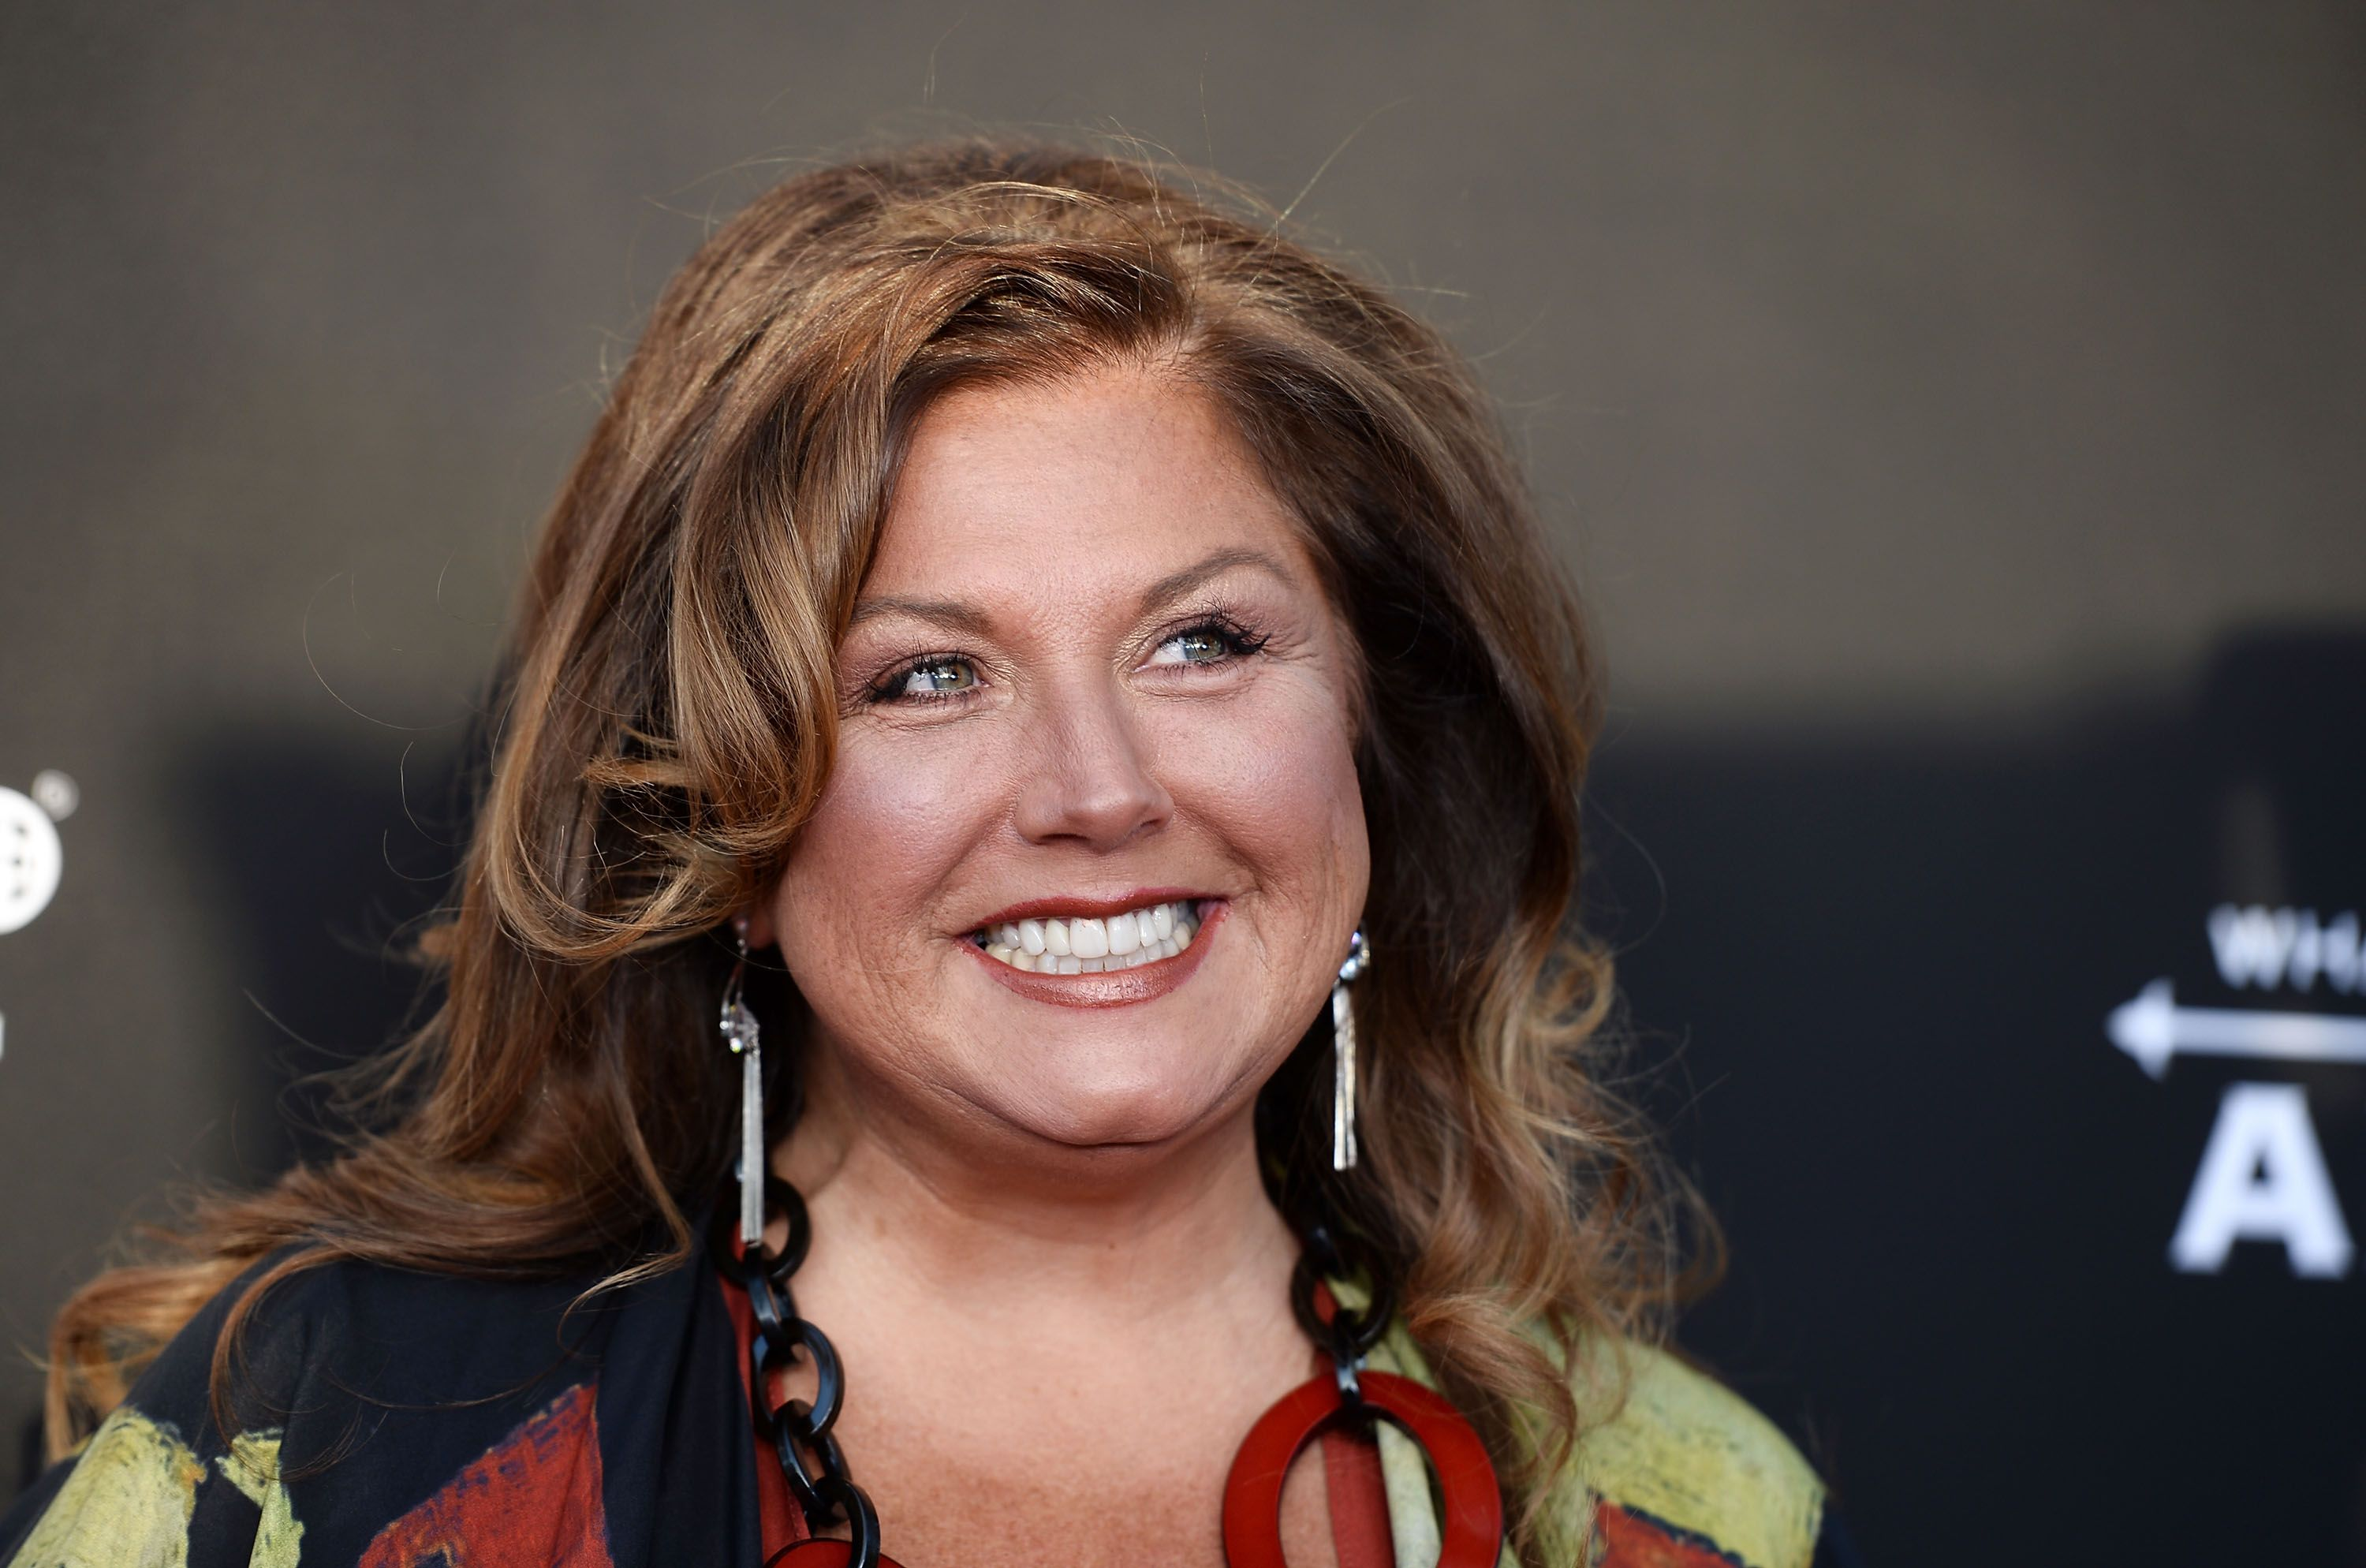 Abby Lee Miller Sheds Light on Cancer Misdiagnosis in Instagram Photo